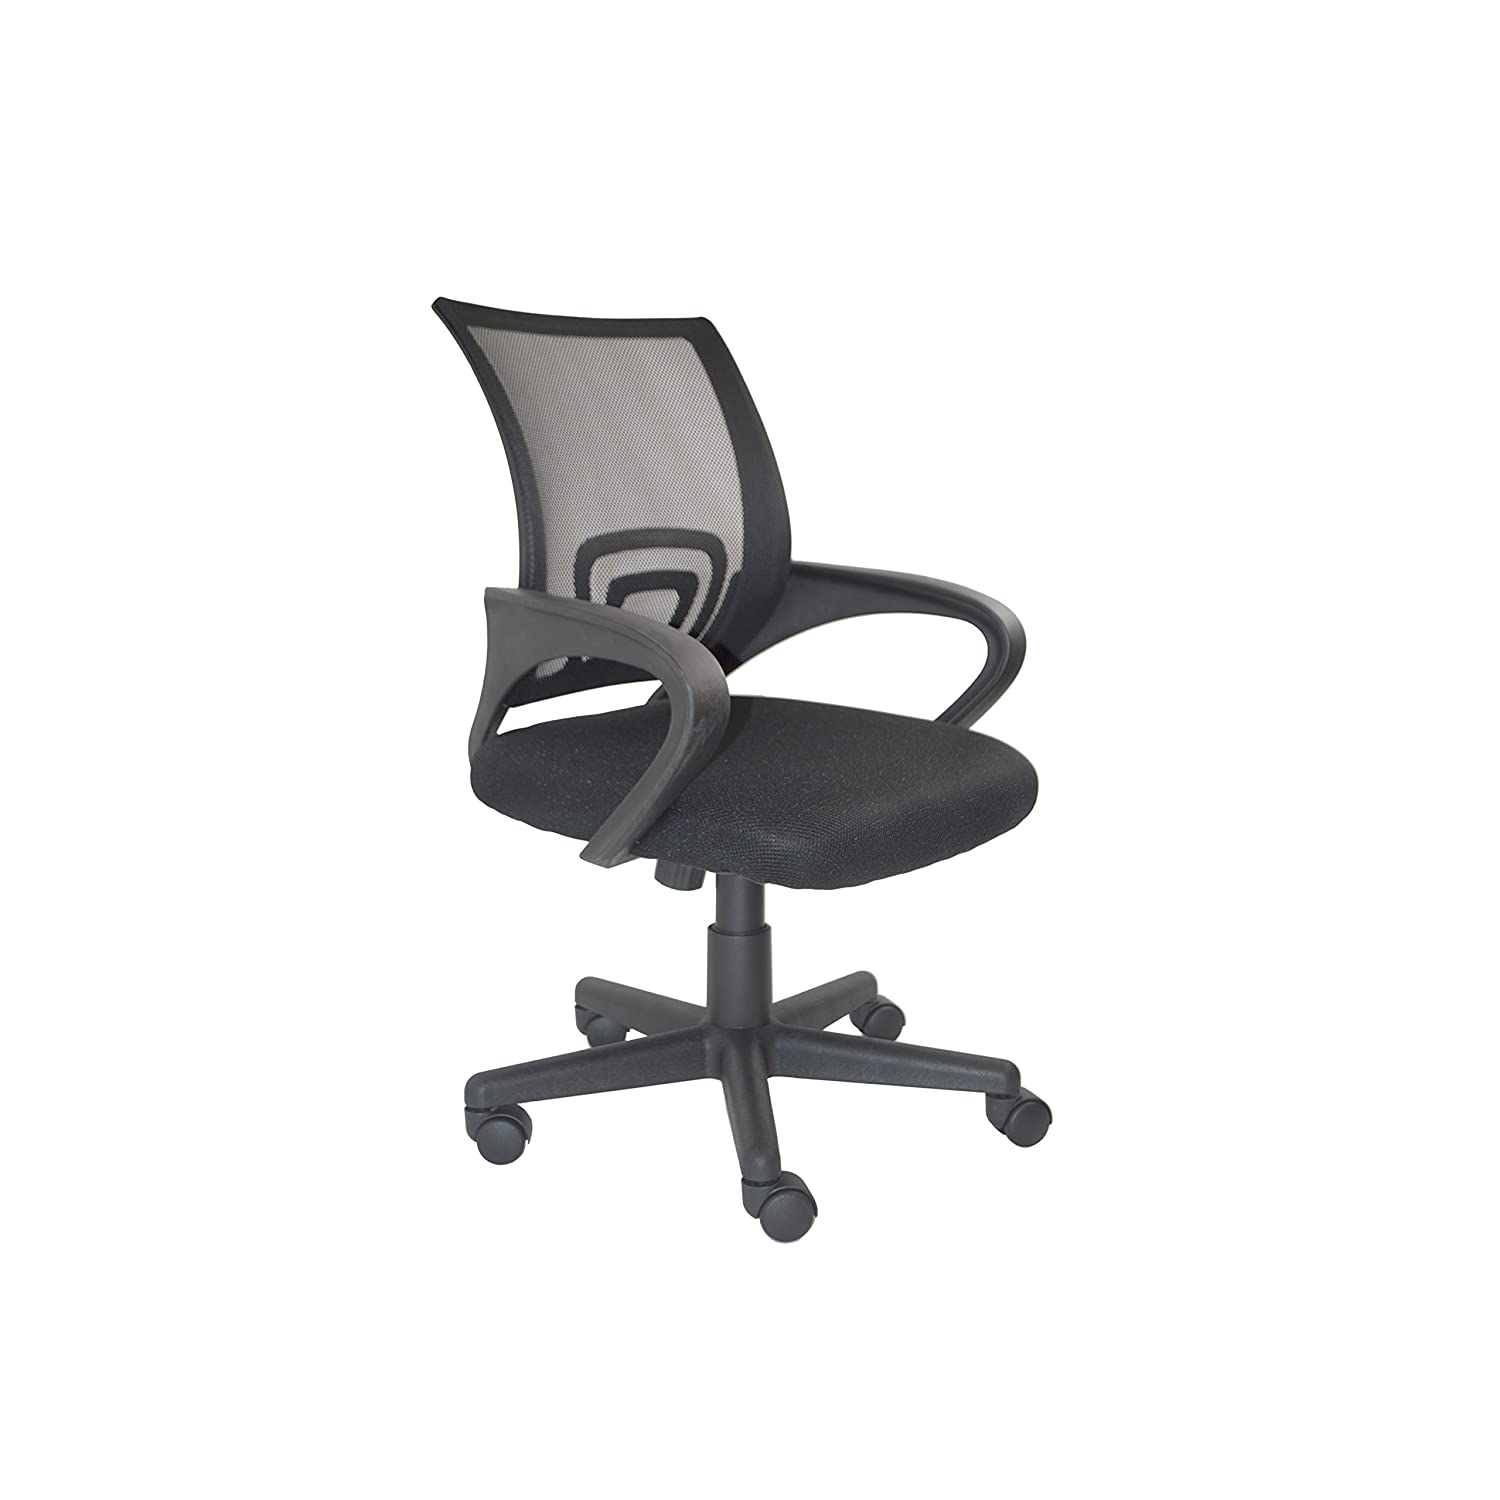 ALEKO® ALCM813BL Ergonomic Office Chair, High Back Mesh Chair